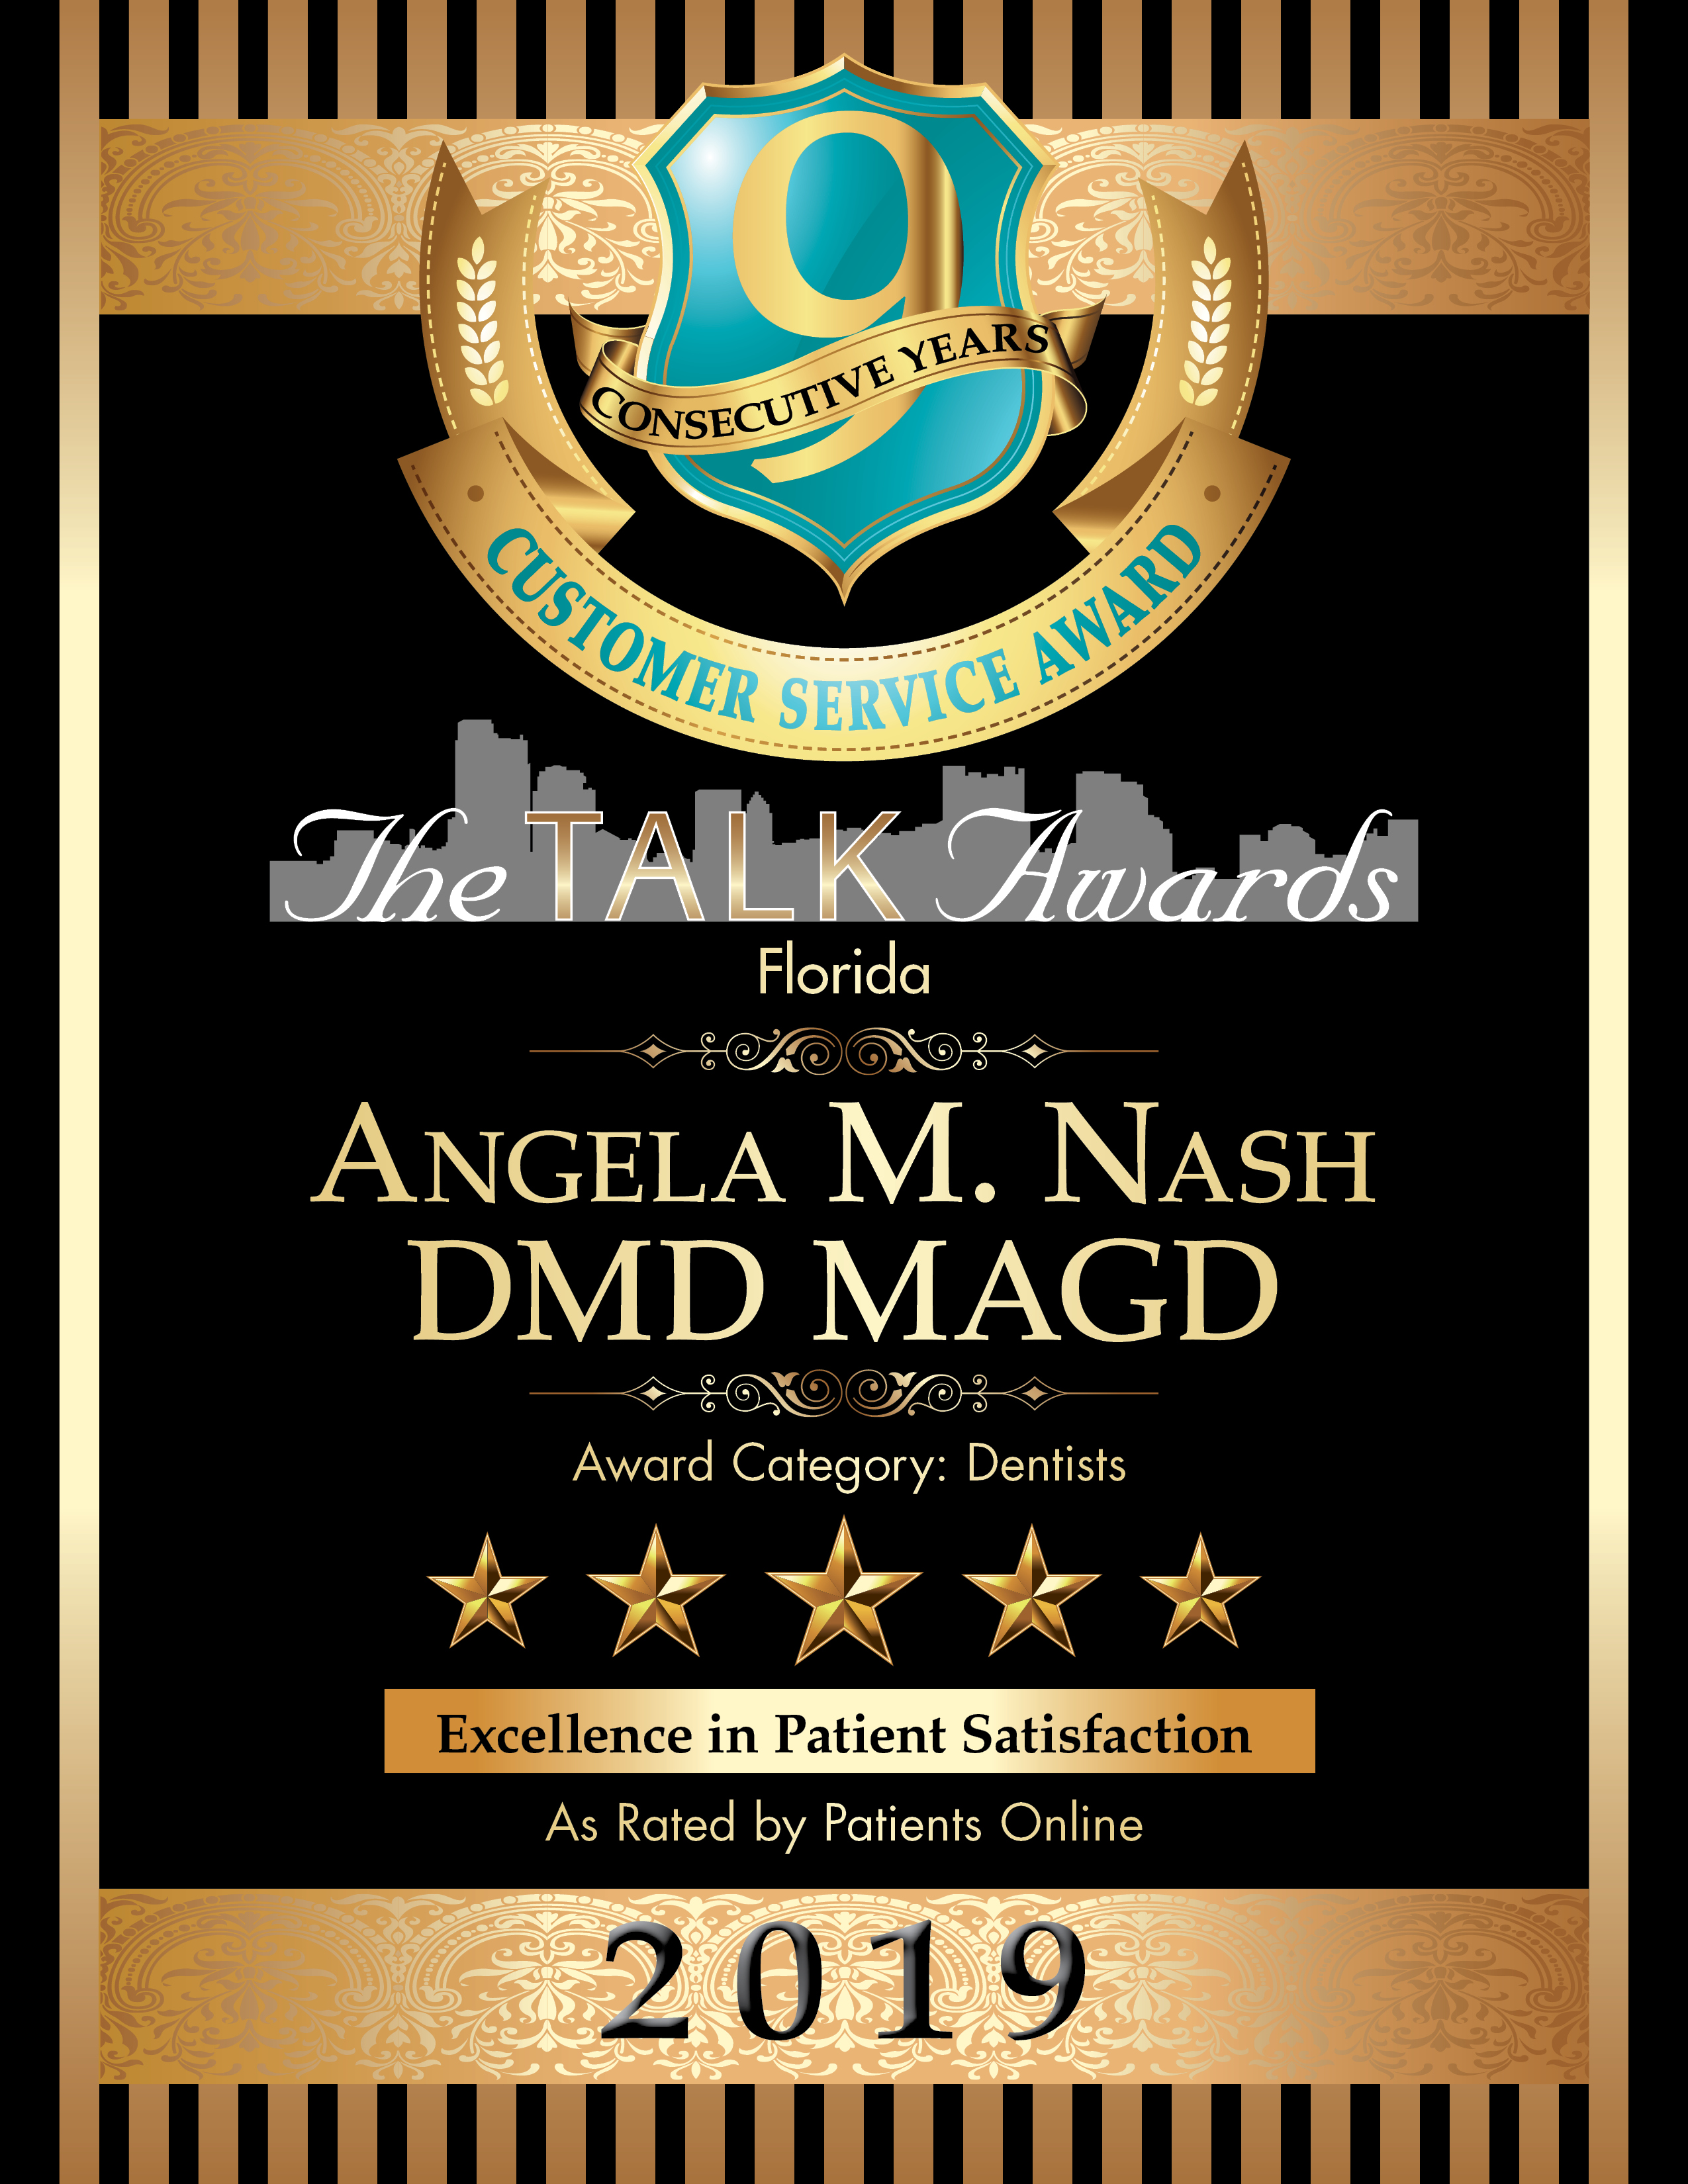 The Talk Awards Certificate